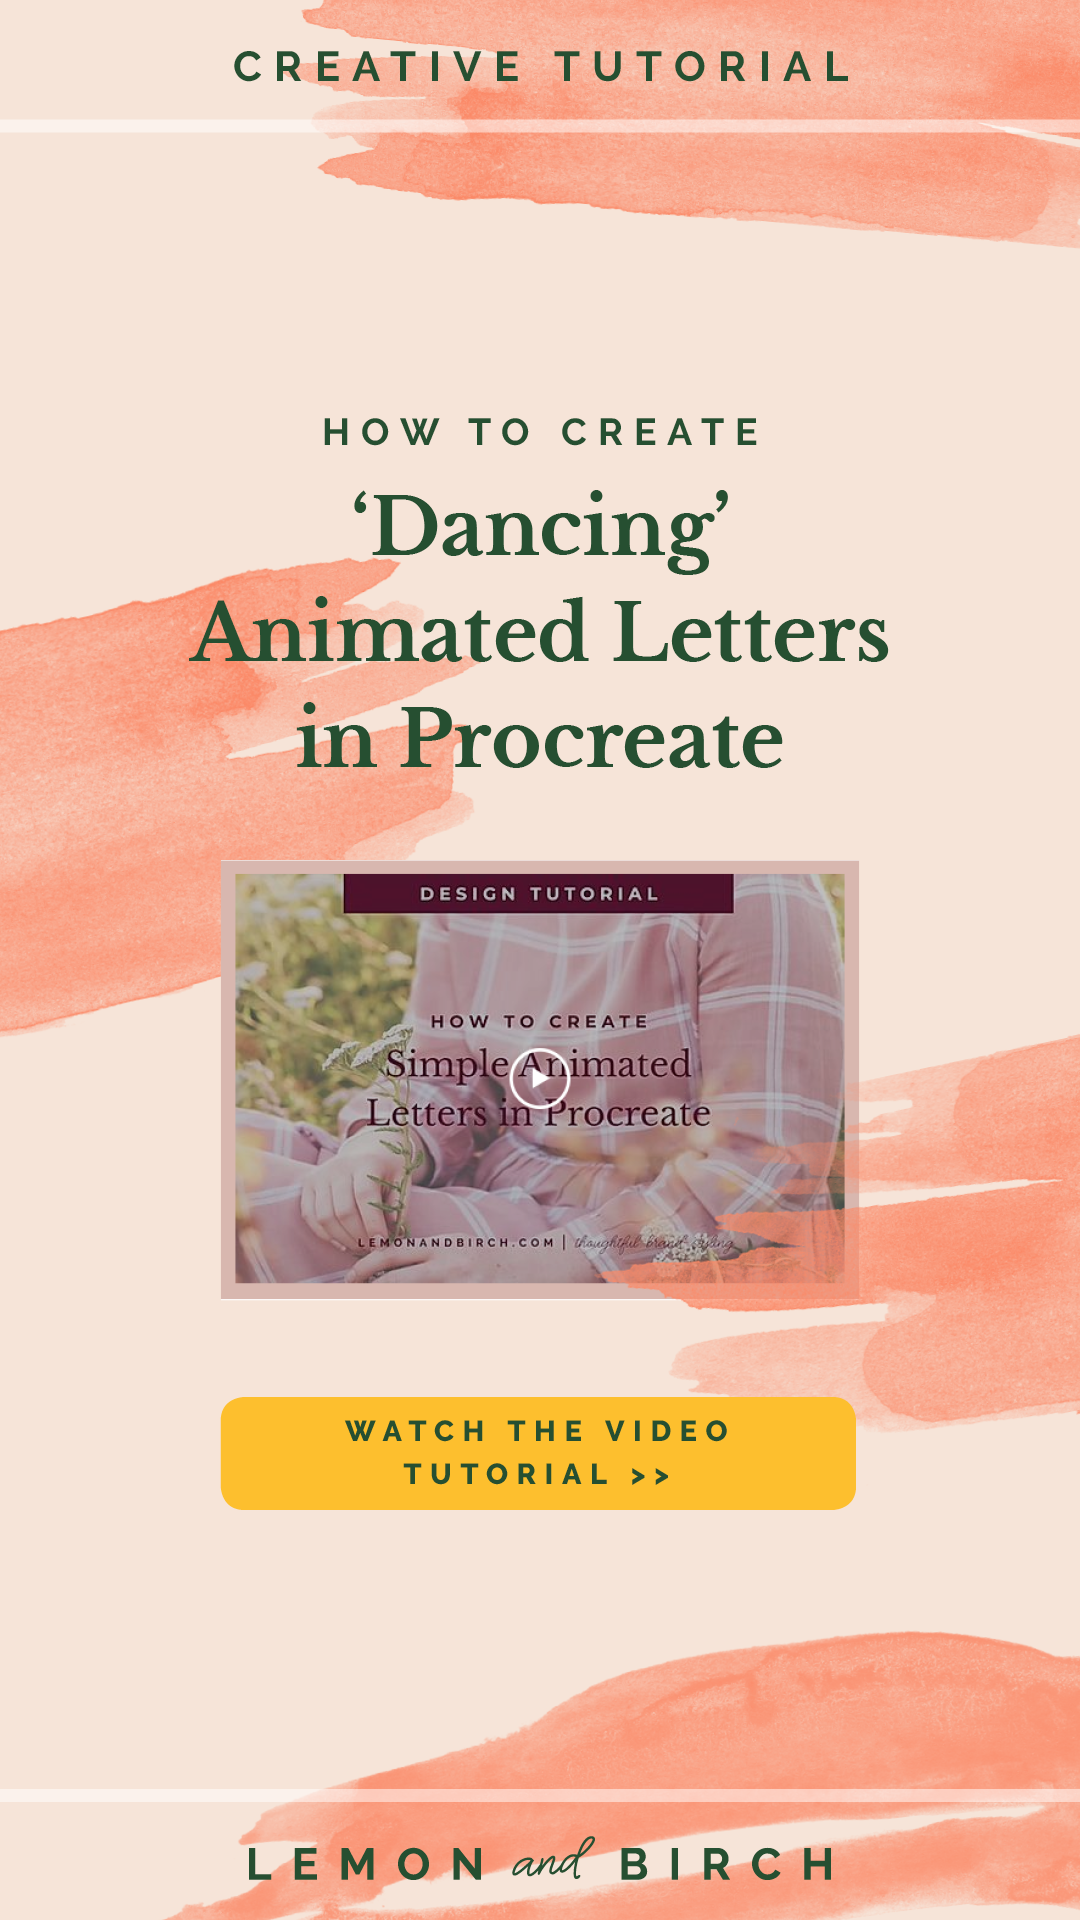 How to Create Dancing Animated Letters in Procreate